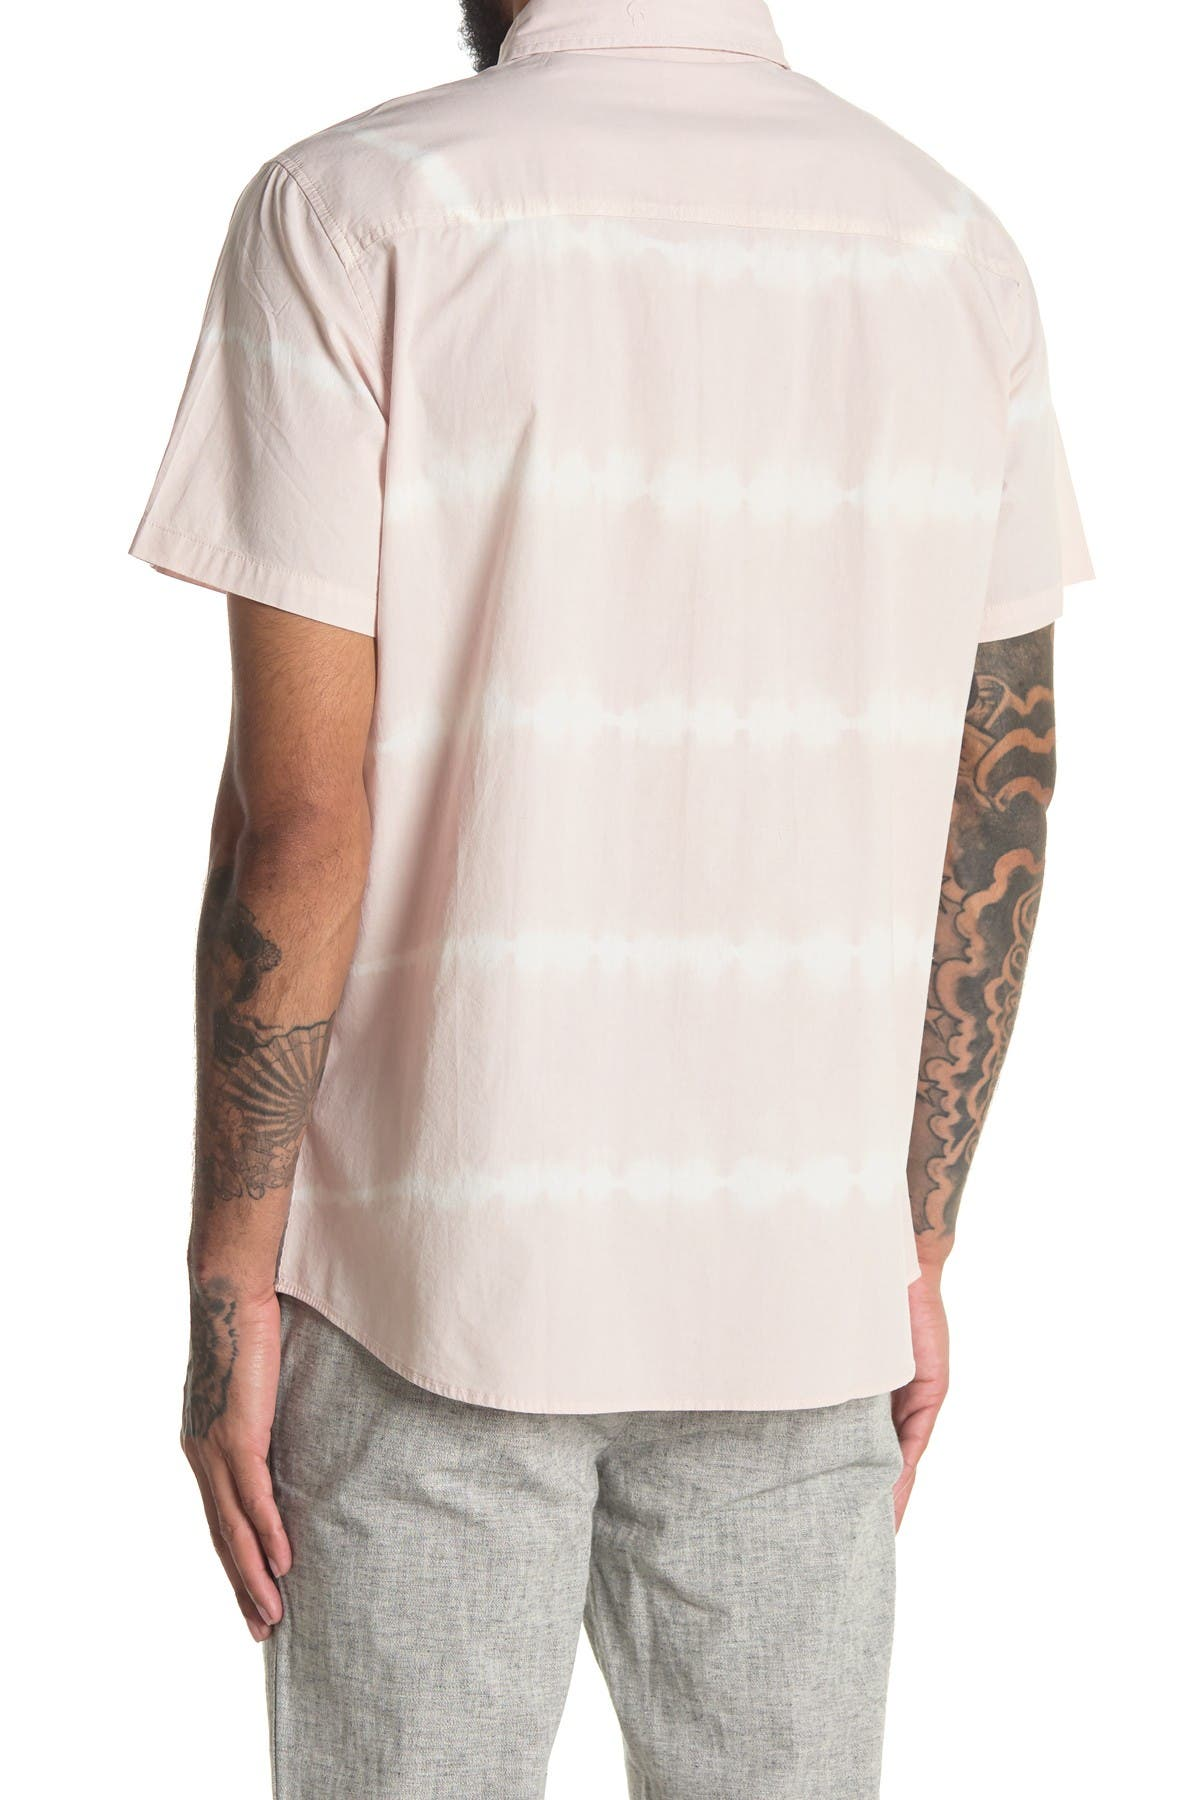 Image of Sovereign Code Hawthorne Short Sleeve Button Down Shirt